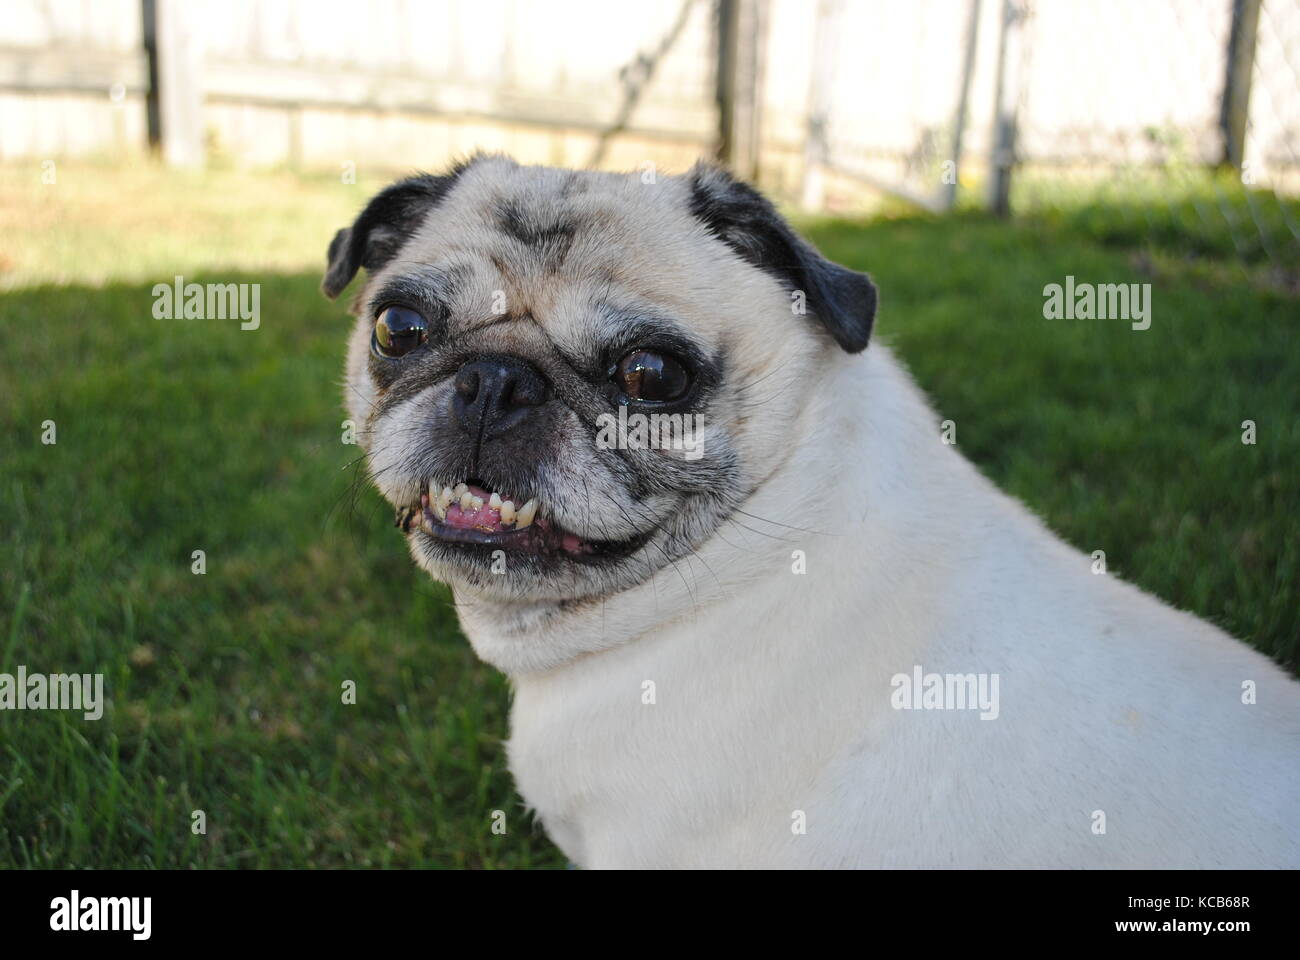 A pug showing bottom crooked teeth - Stock Image